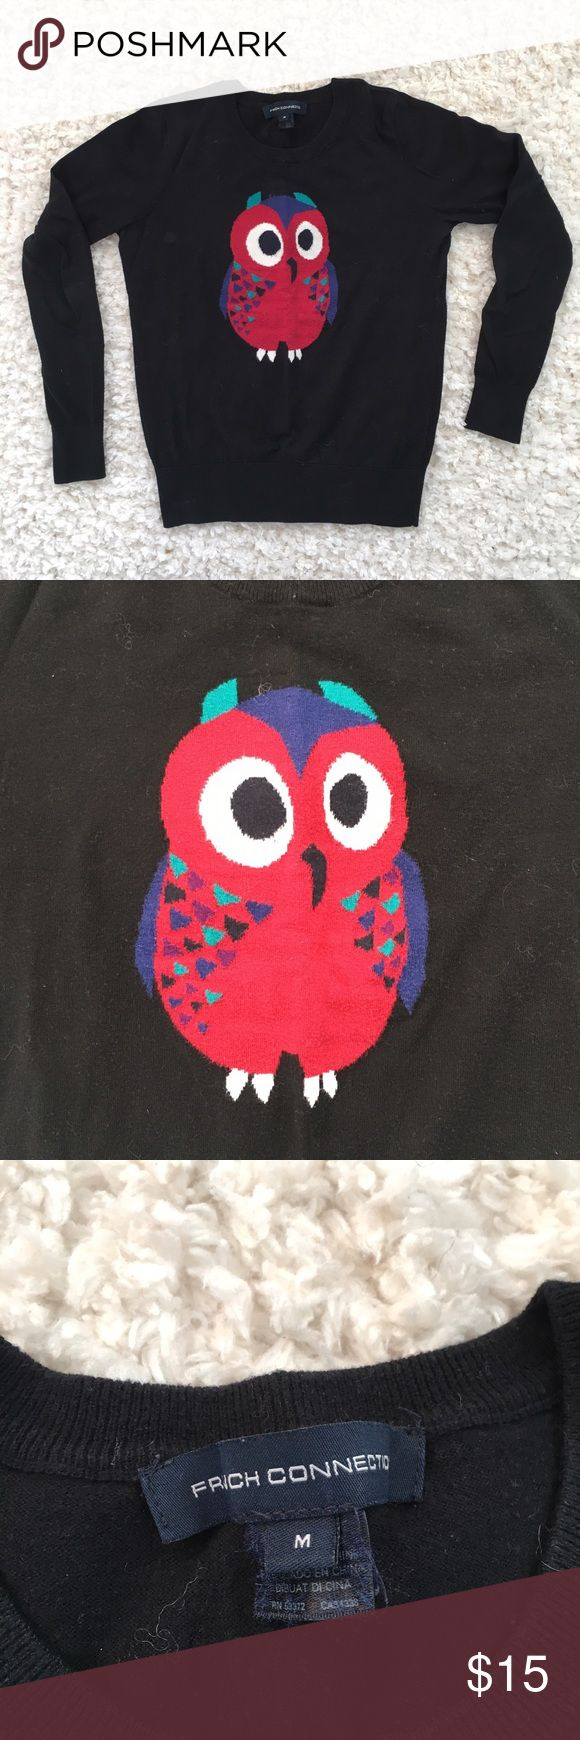 French Connection Owl Sweater Super cute owl sweater. Black base color. Hoot hoot! 🦉 French Connection Sweaters Crew & Scoop Necks